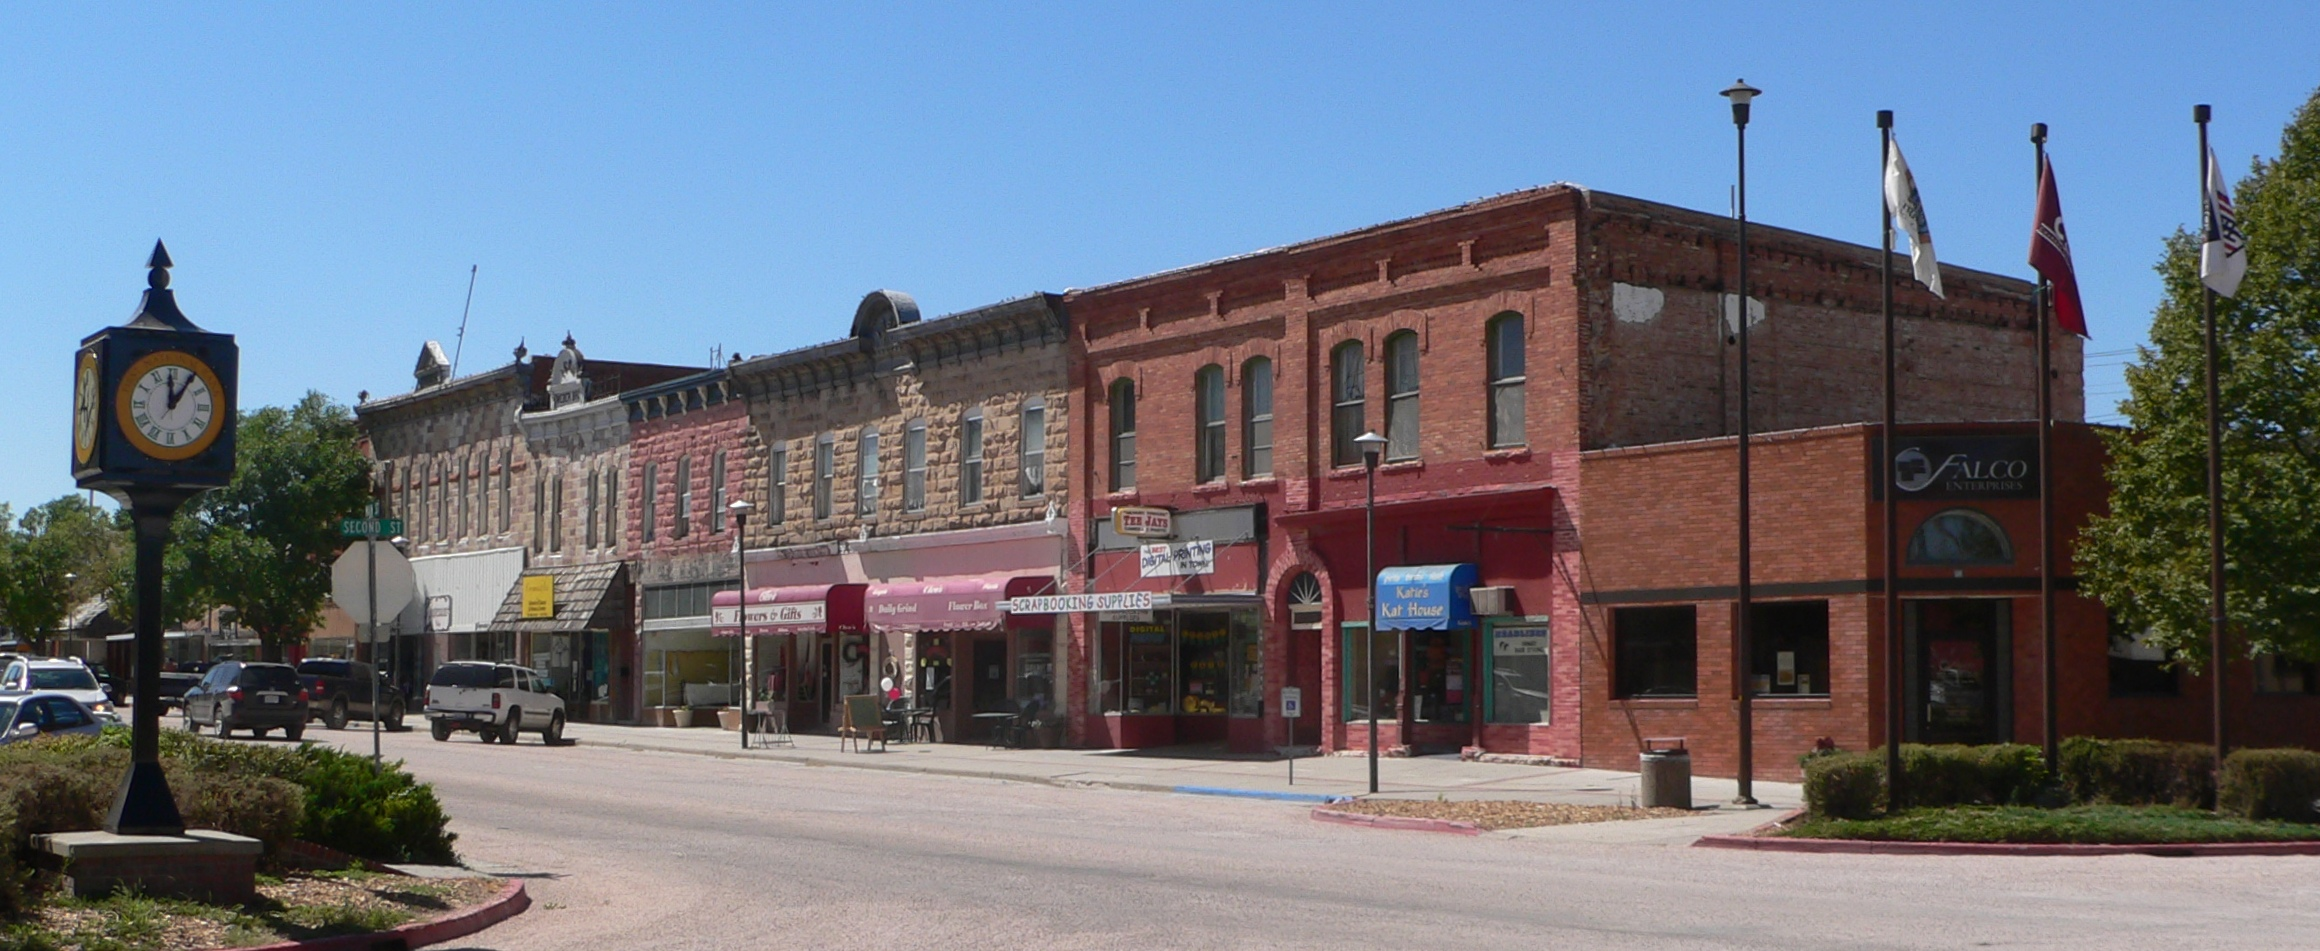 Quaint Town File Chadron Nebraska 200 Odd Main Jpg Wikimedia Commons